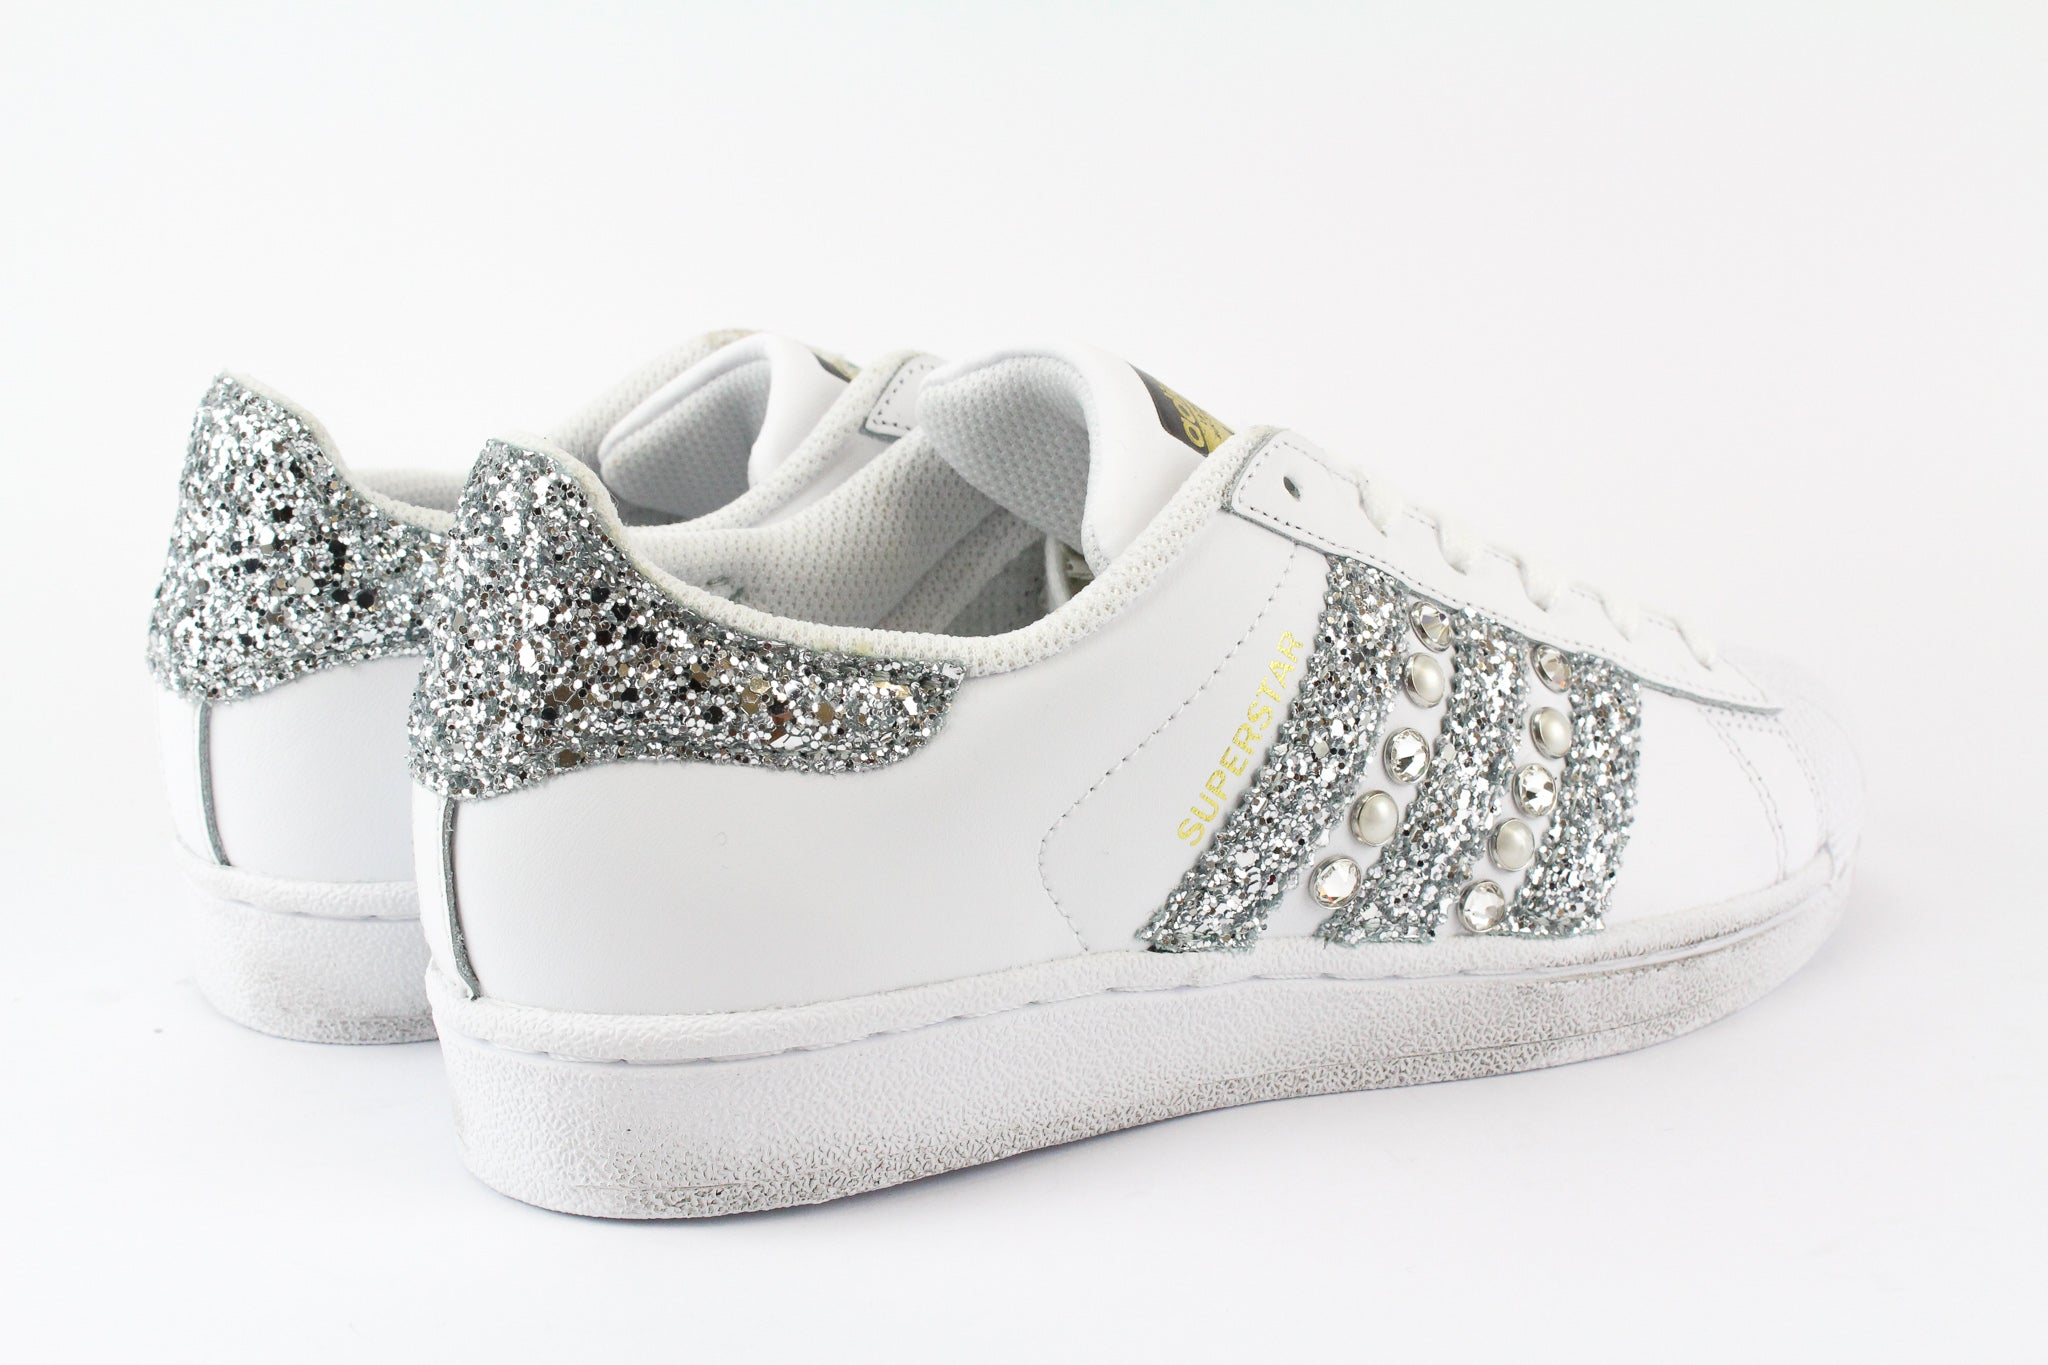 Adidas Superstar Personalizzate Silver Glitter & Strass